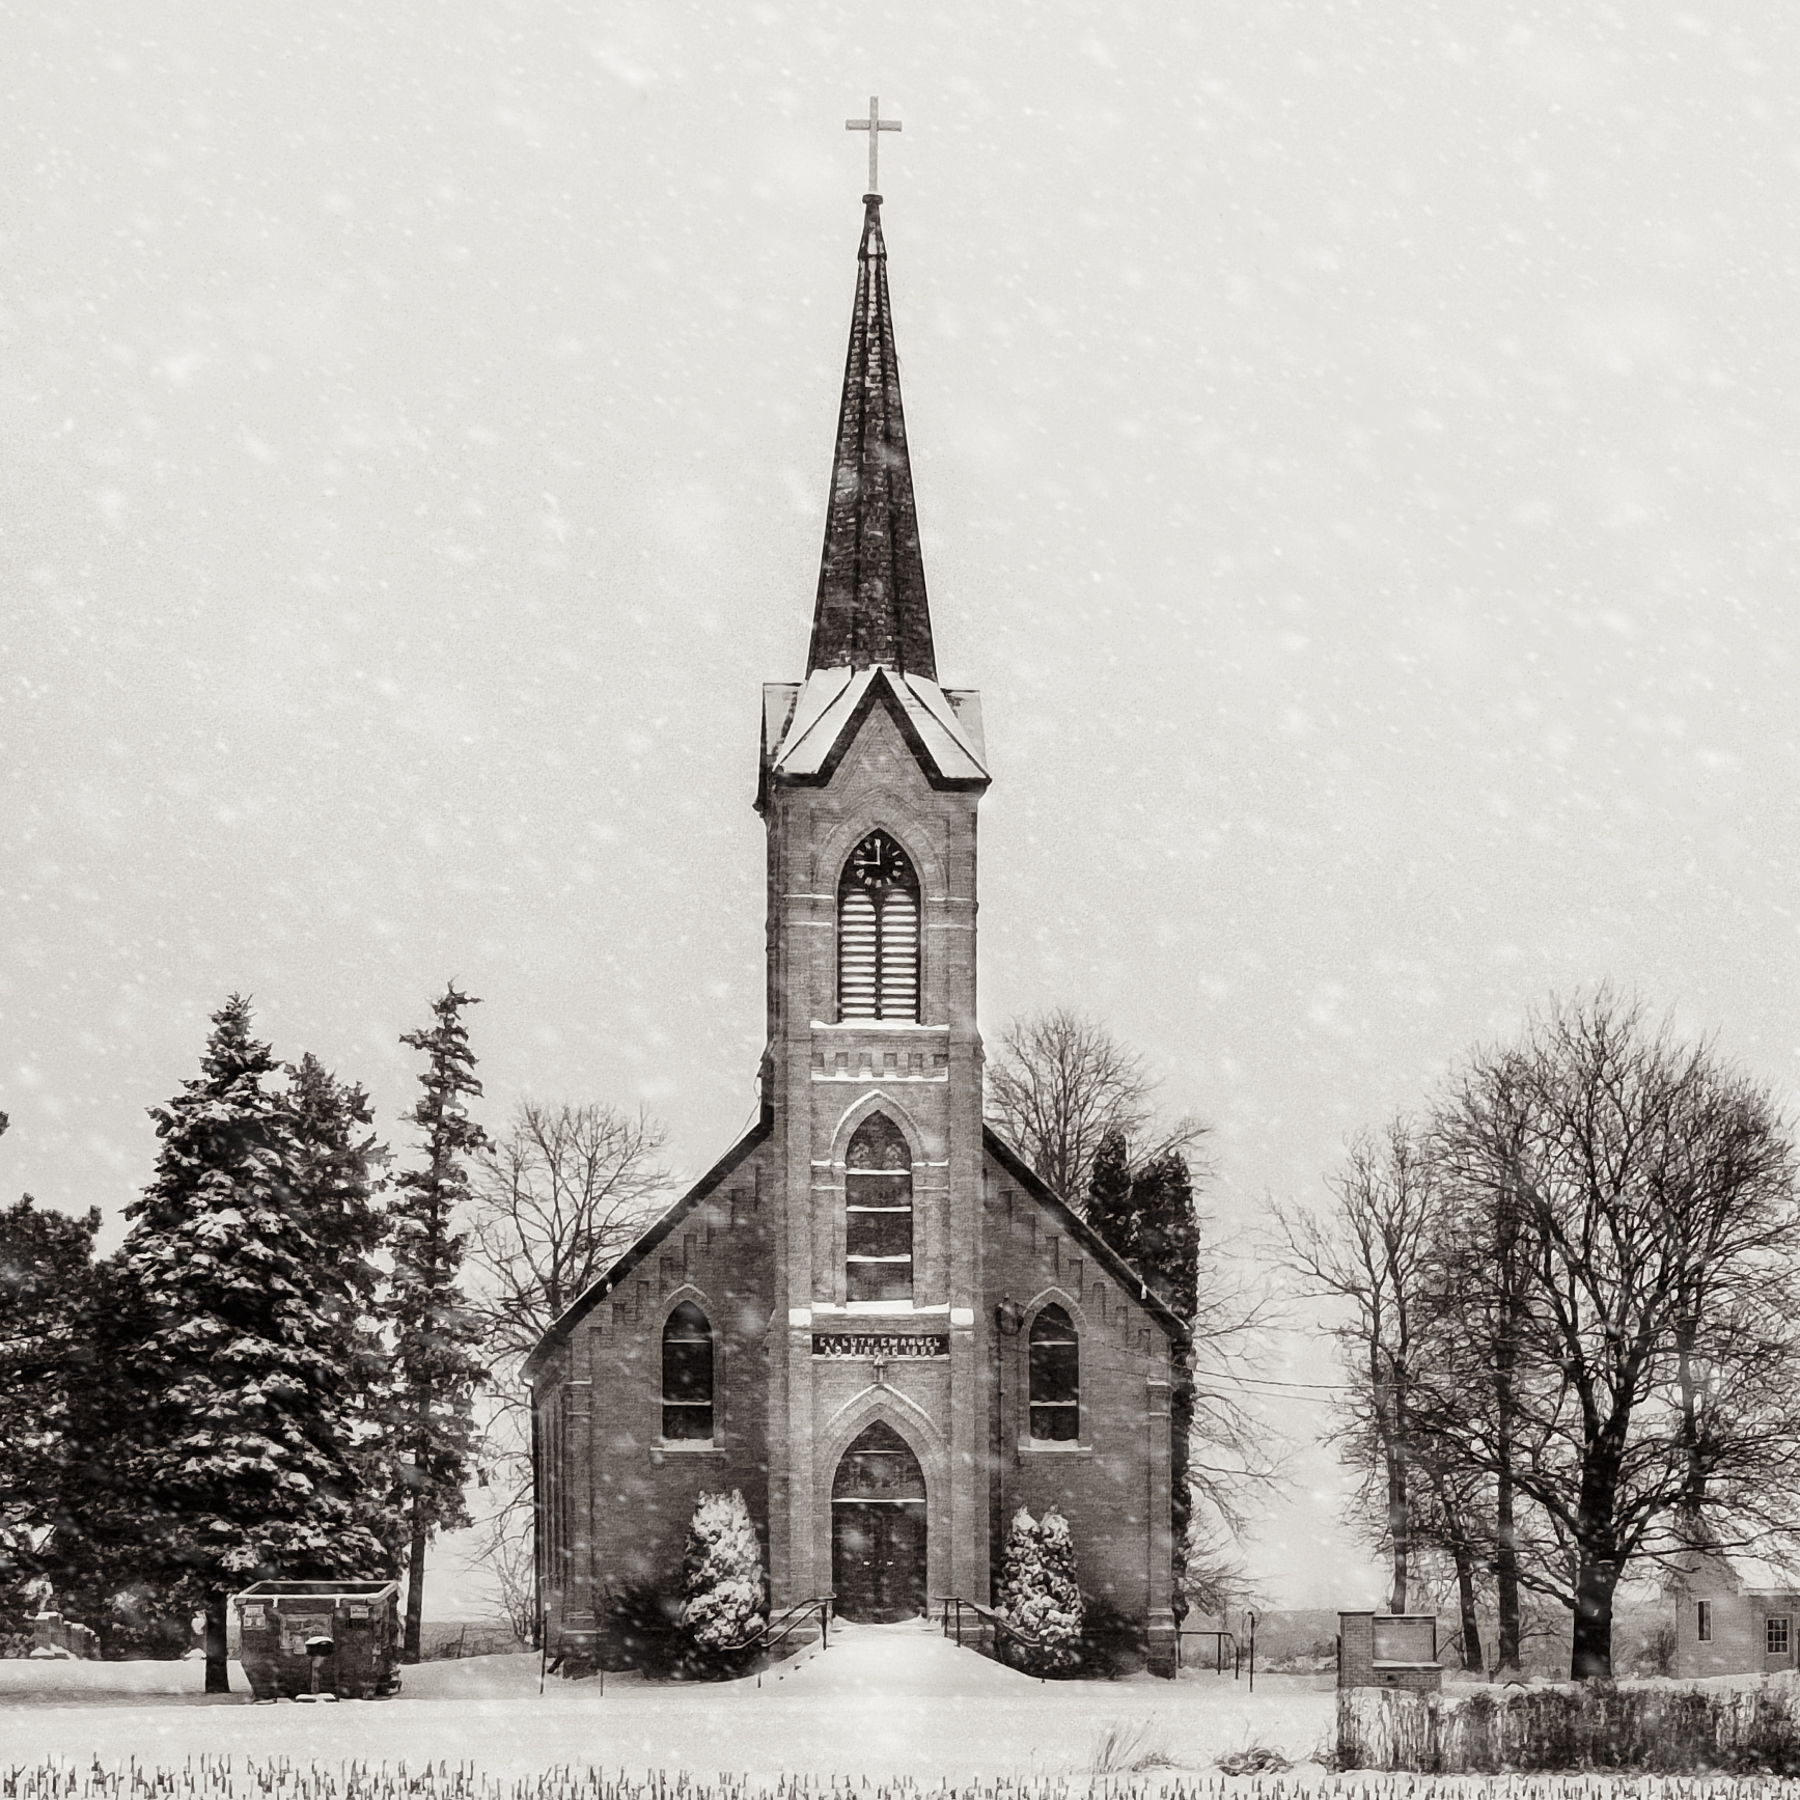 Michael_Knapstein_AmericanMidwestChurches_WinterChurch_5.jpg